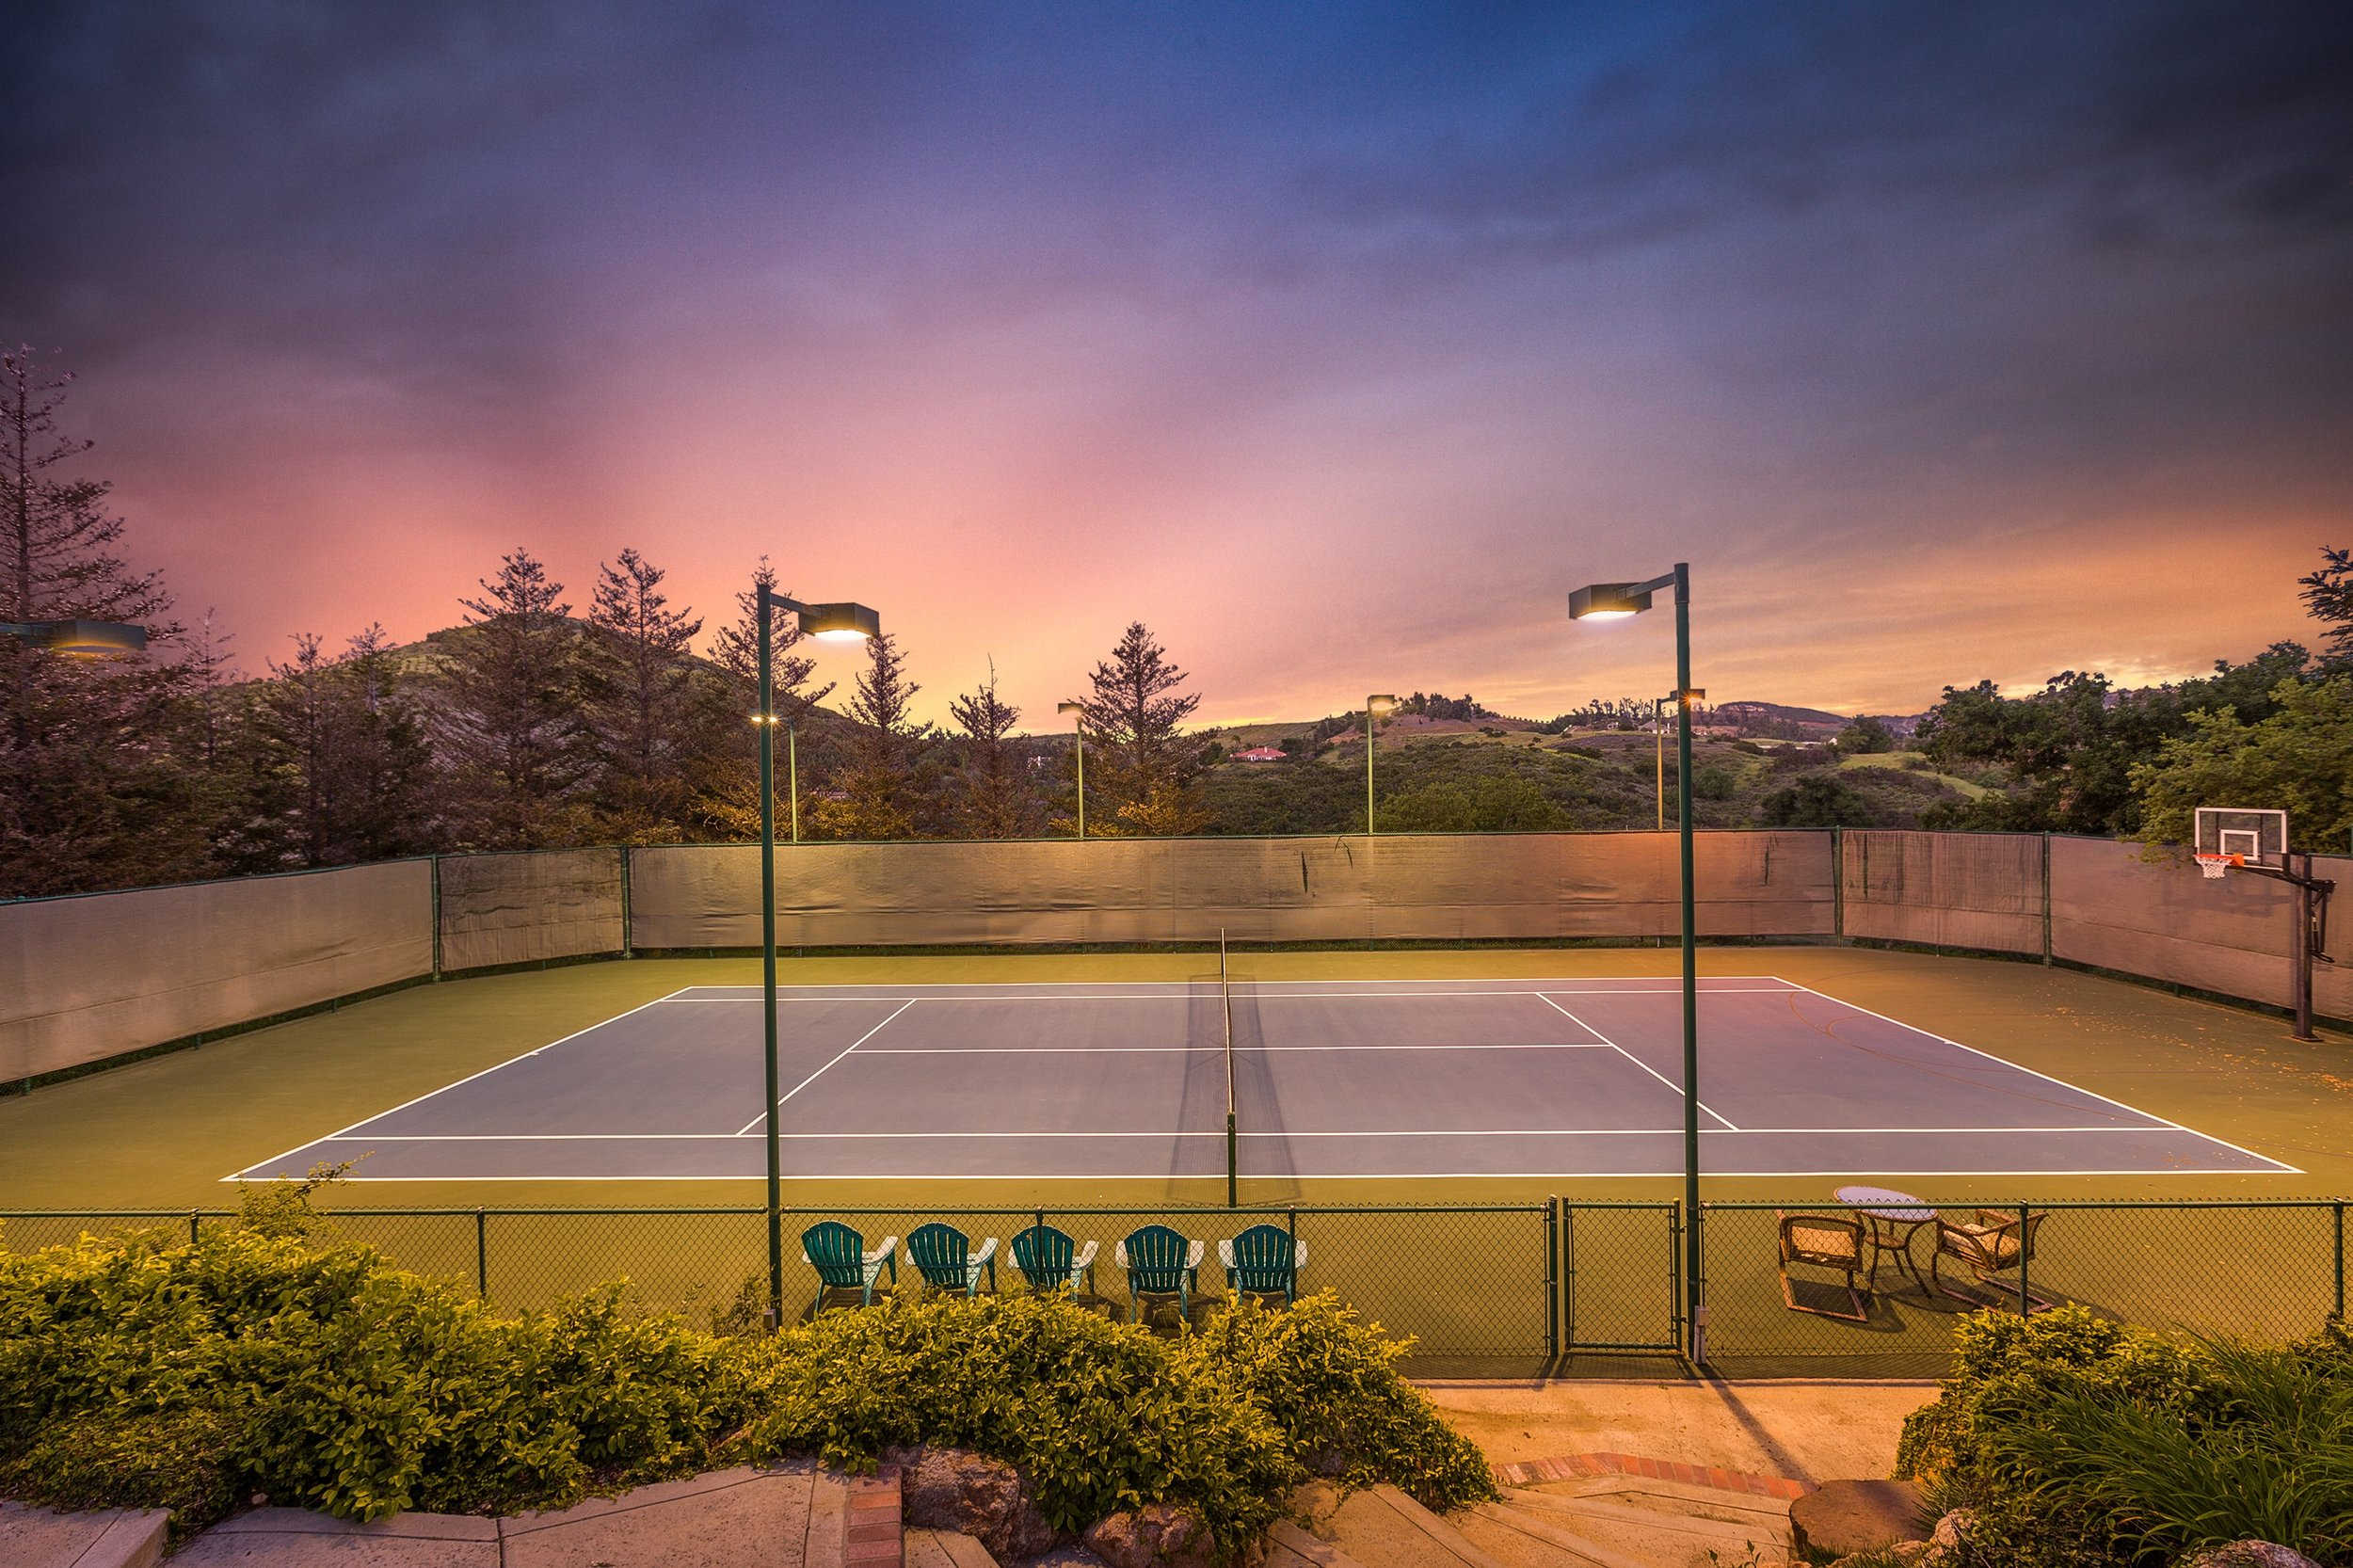 073_Tennis Court at Twilight.jpg